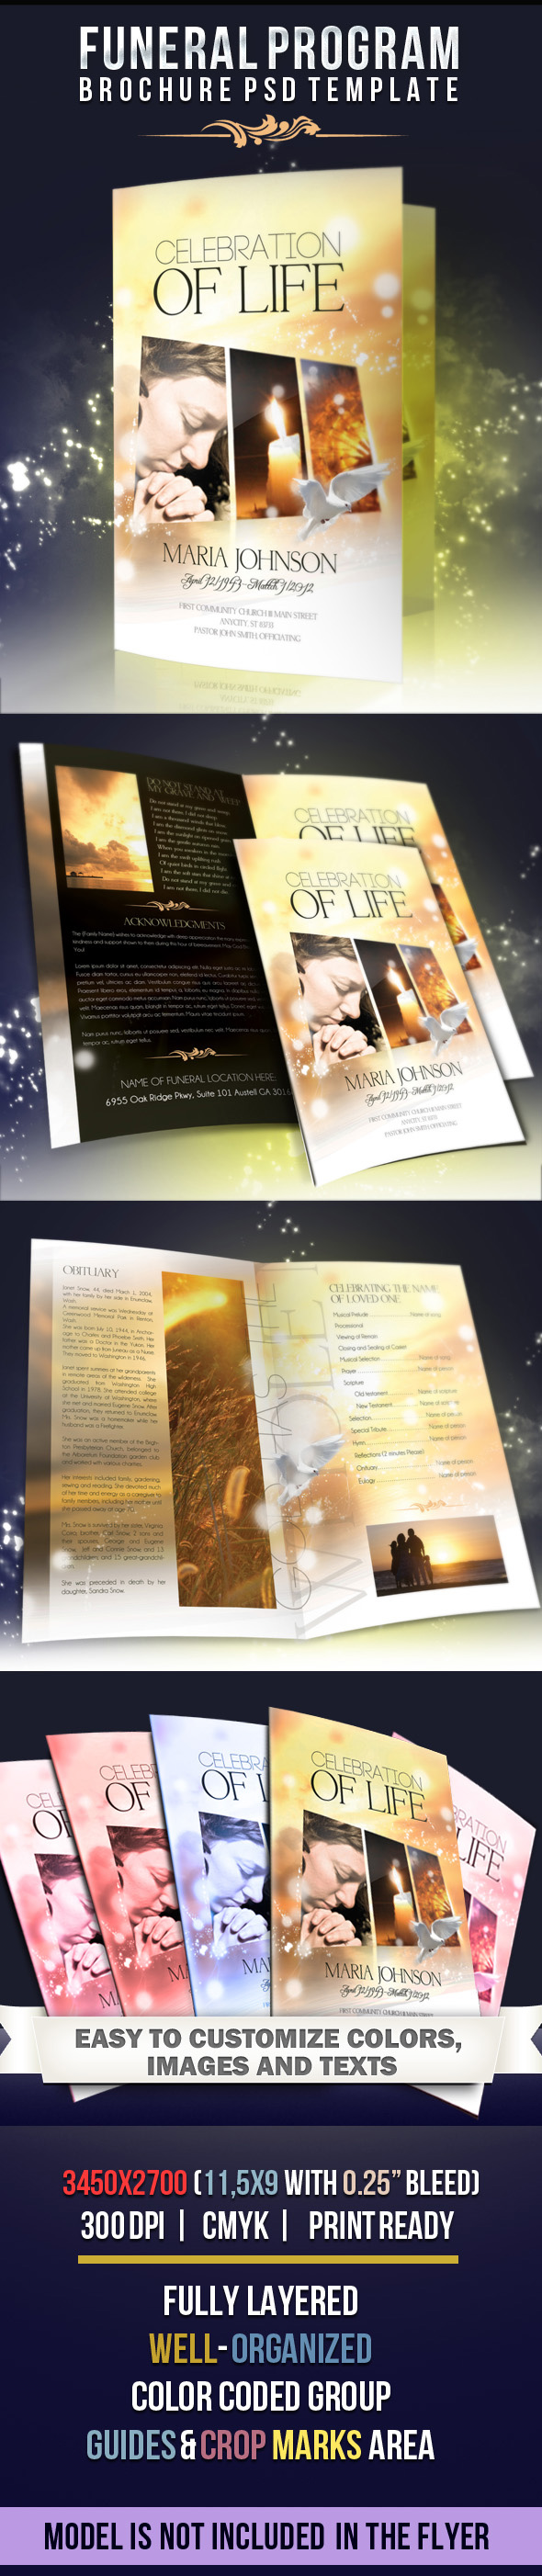 25 best psd brochure templates psd templates funeral program brochure template celebration of life